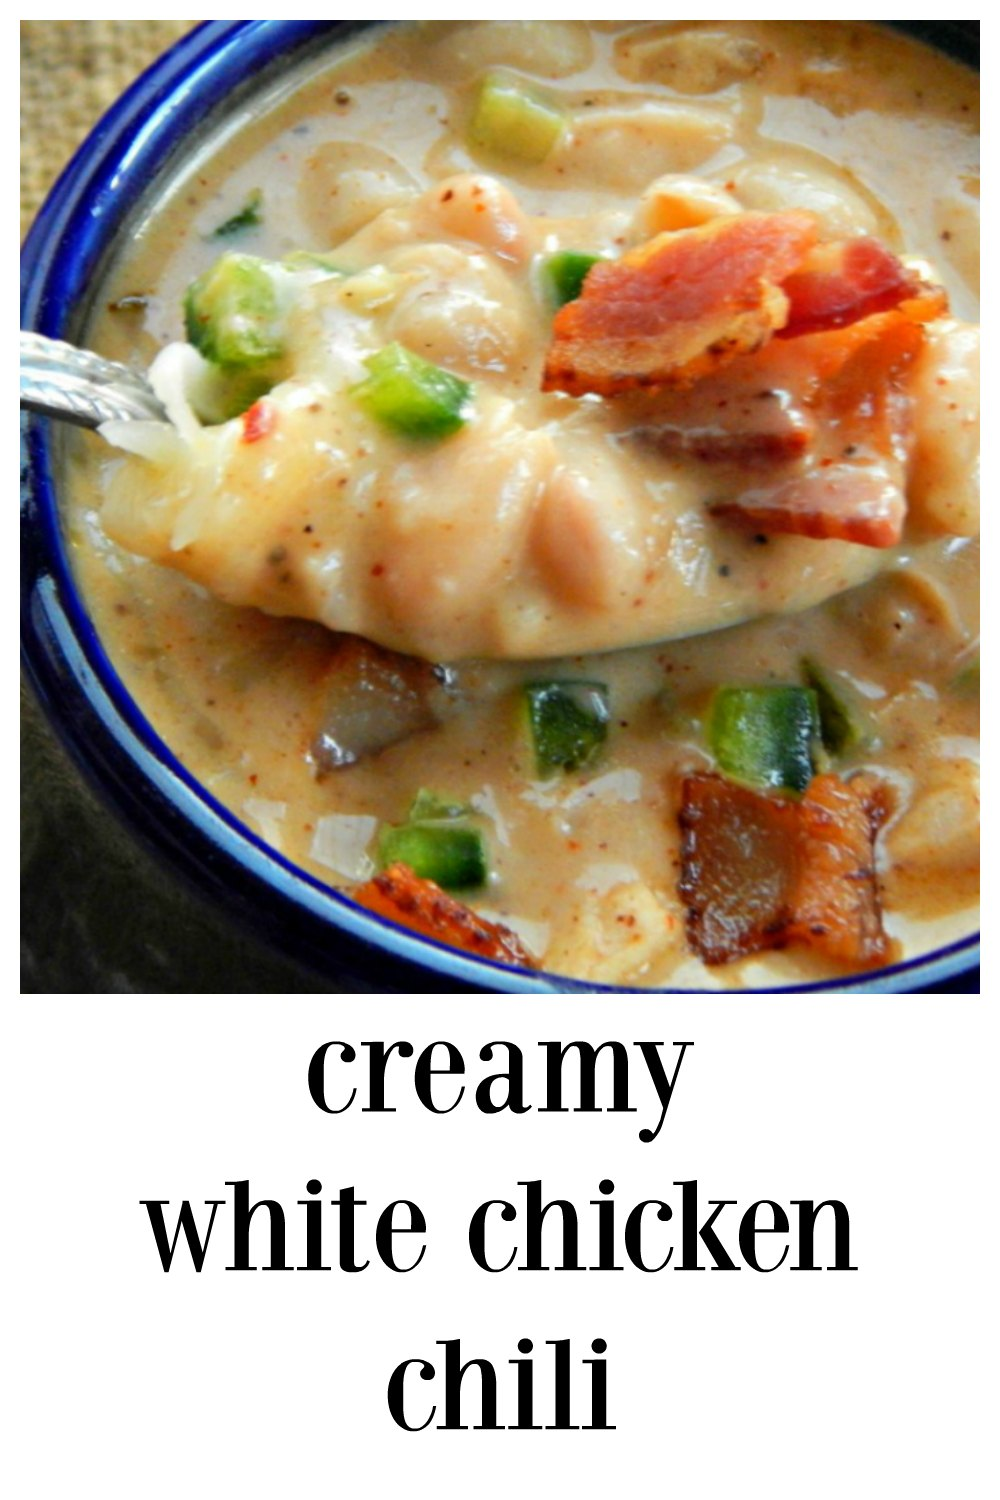 Creamy White Chicken Chili is crazy over the top good, a little spicy, a little smoky and crazy good. Easy to make & perfect for game day or family dinner! #CreamyWhiteChickenChili #WhiteChickenChili #ChickenChili #WhiteChili